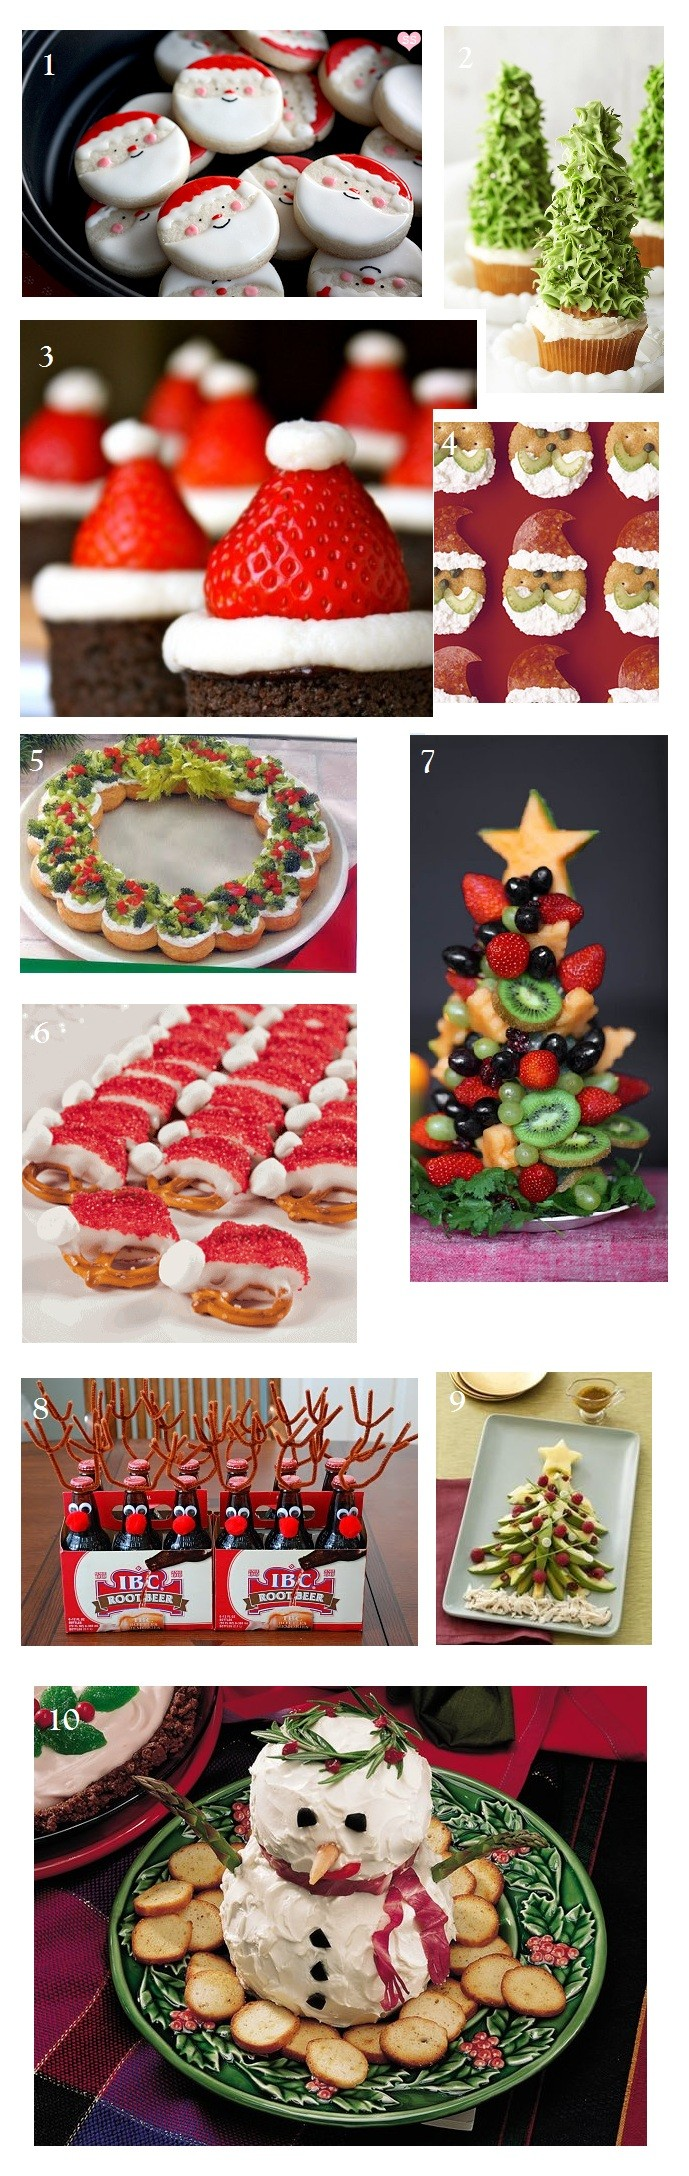 Christmas dessert ideas for parties images for Christmas holiday ideas